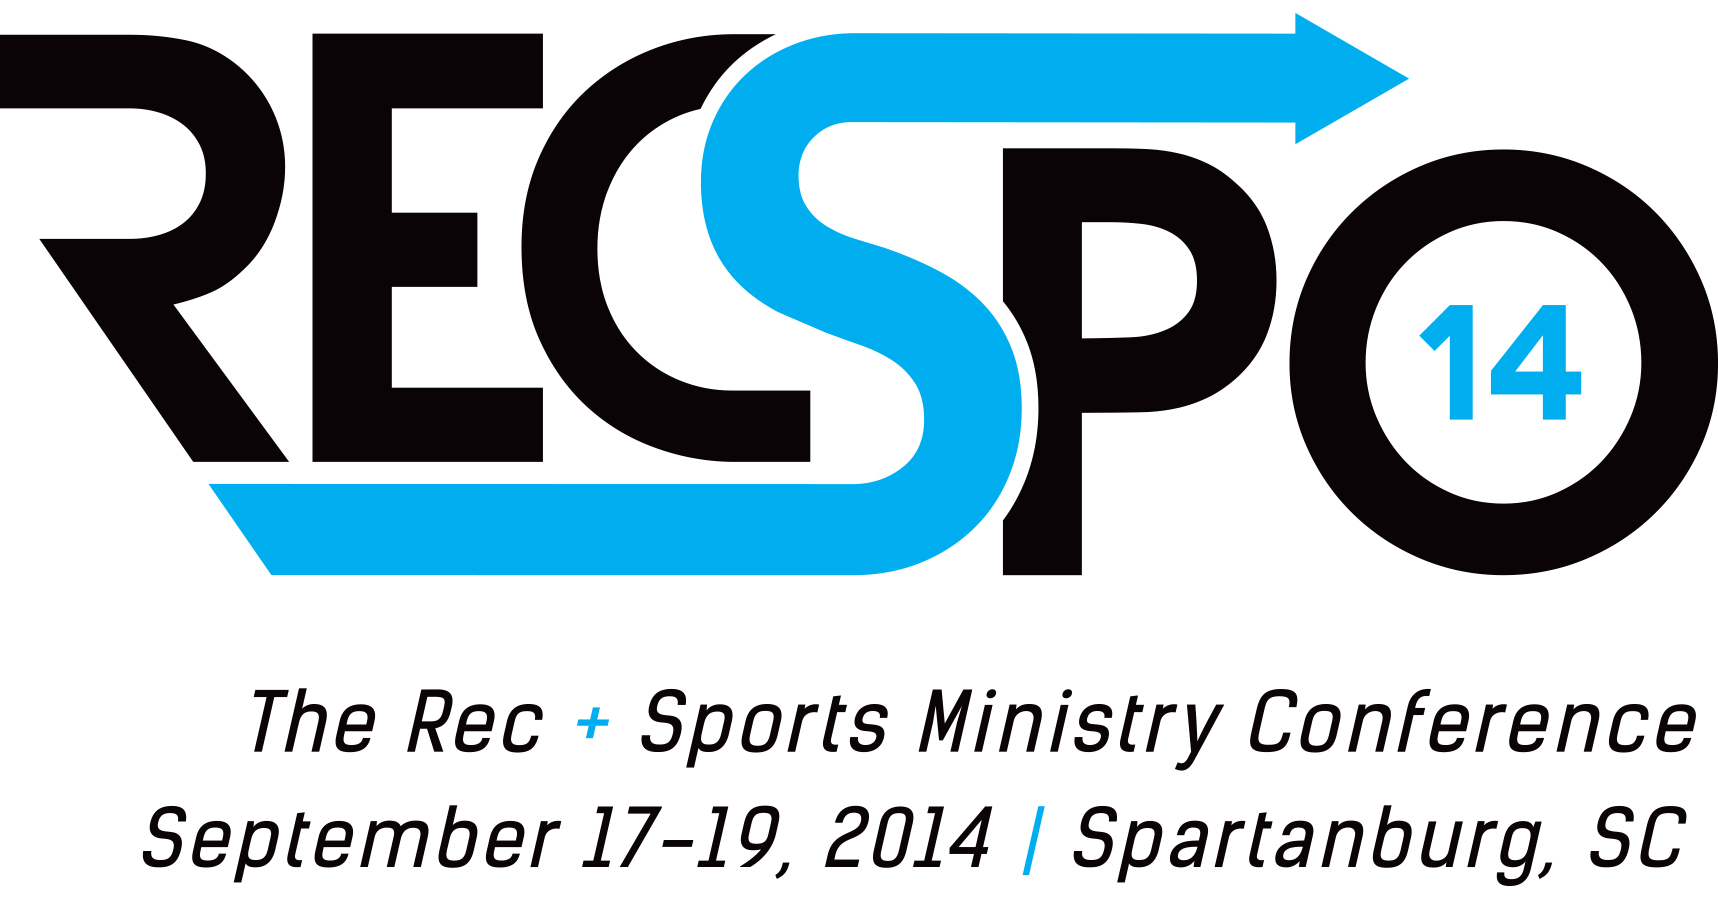 RecSpo, the Recreation and Sports Ministry Conference